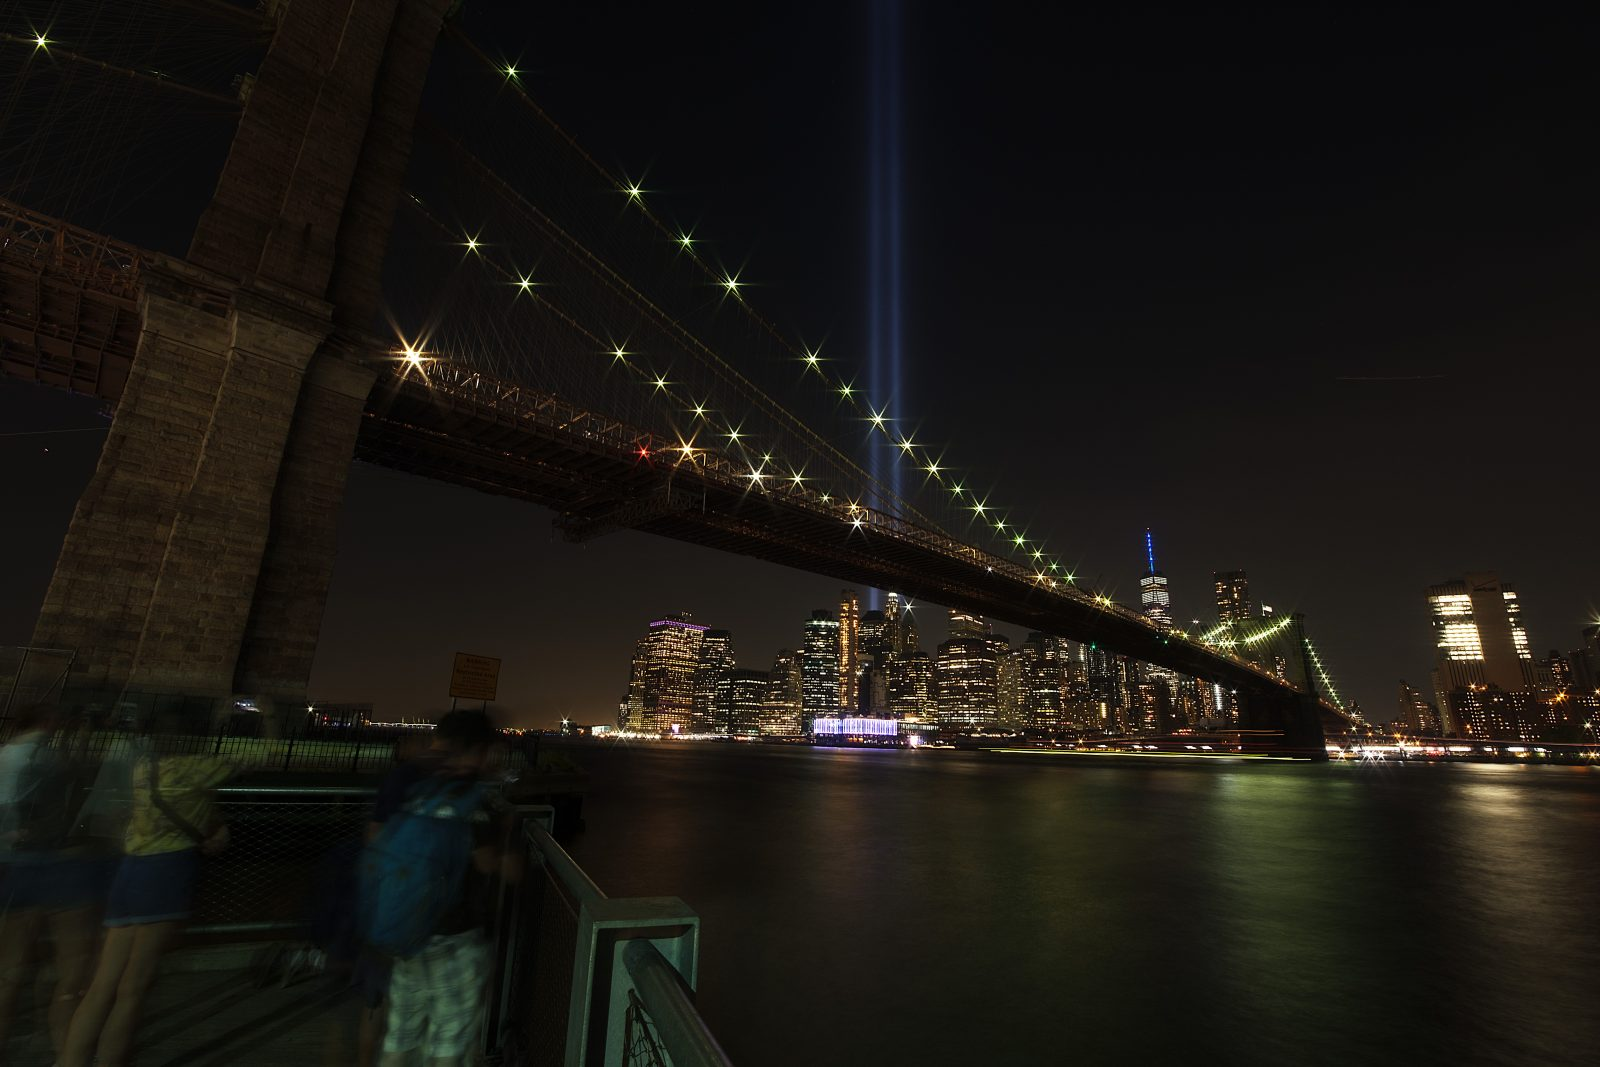 A tribute in lights